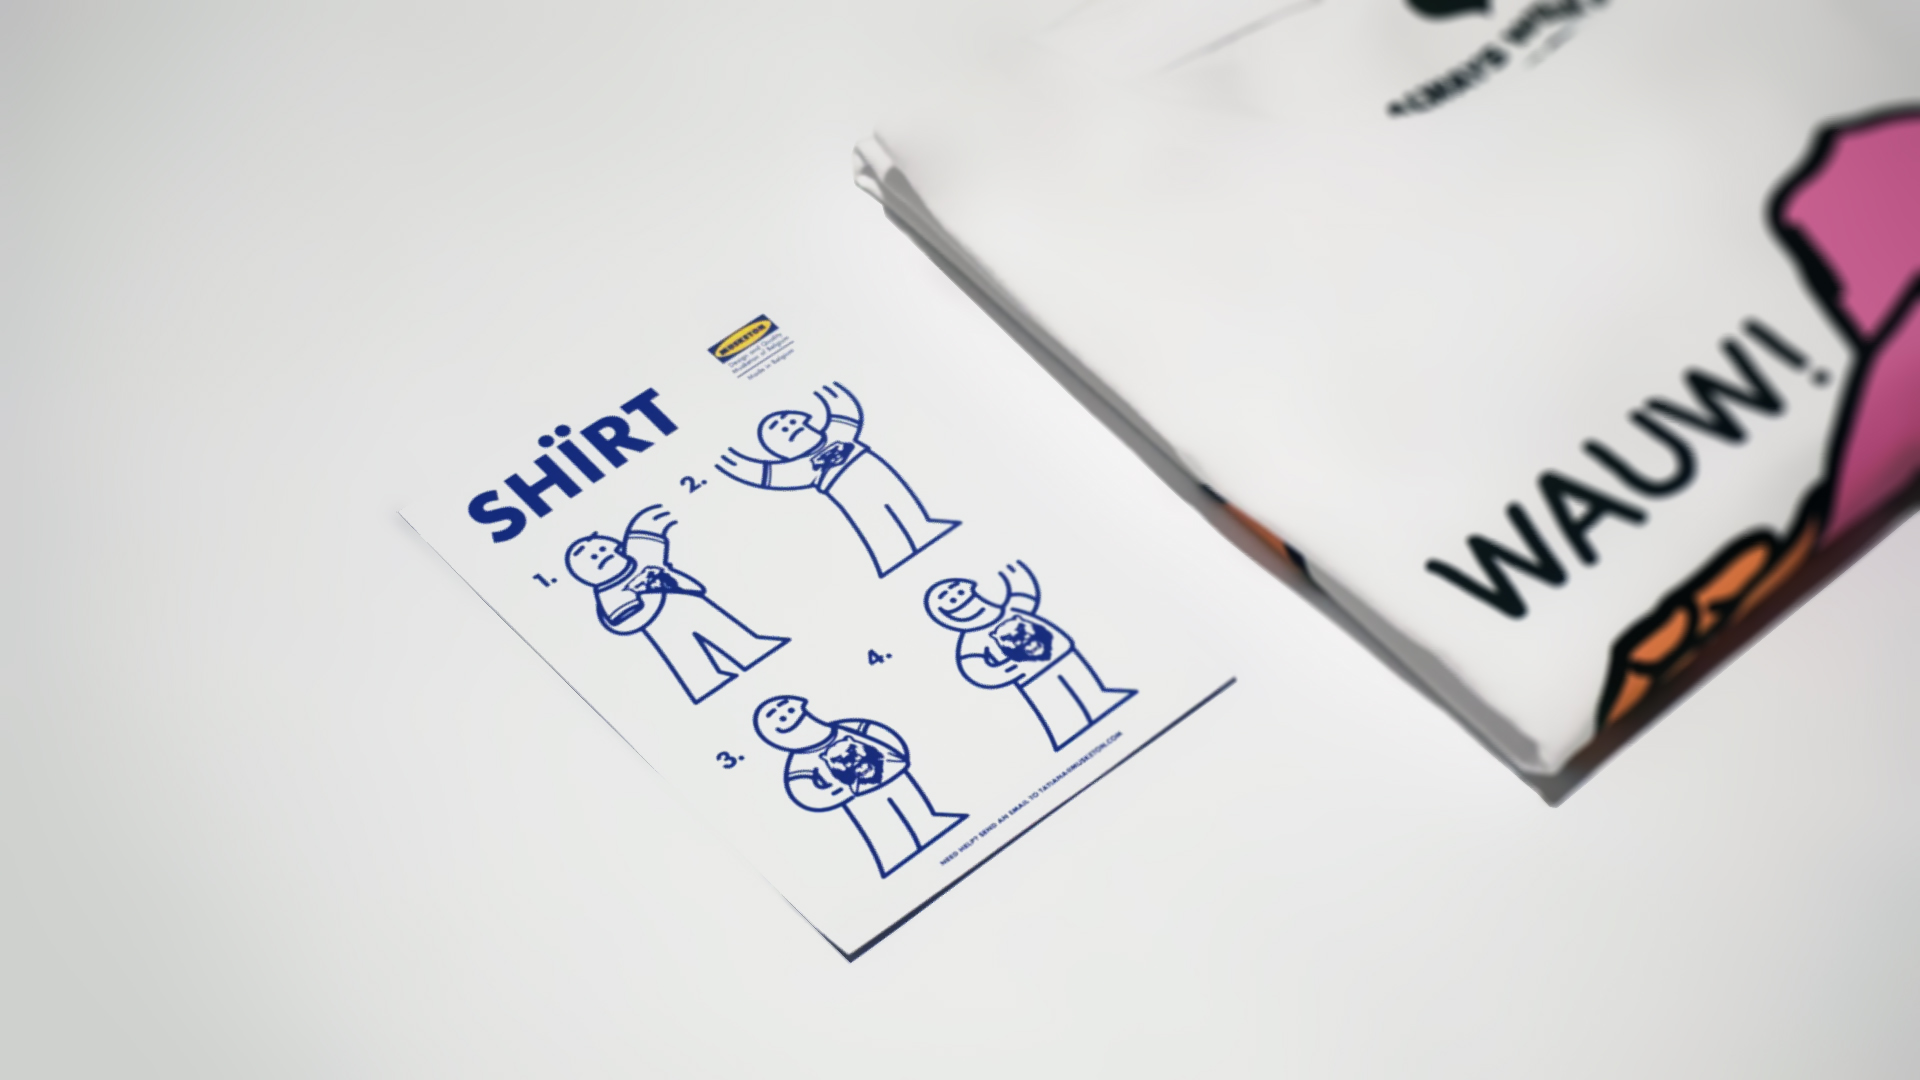 The manual - Since we got a lot of emails from people asking how they should use a t-shirt each shirt ships with a manual on how to use a t-shirt.